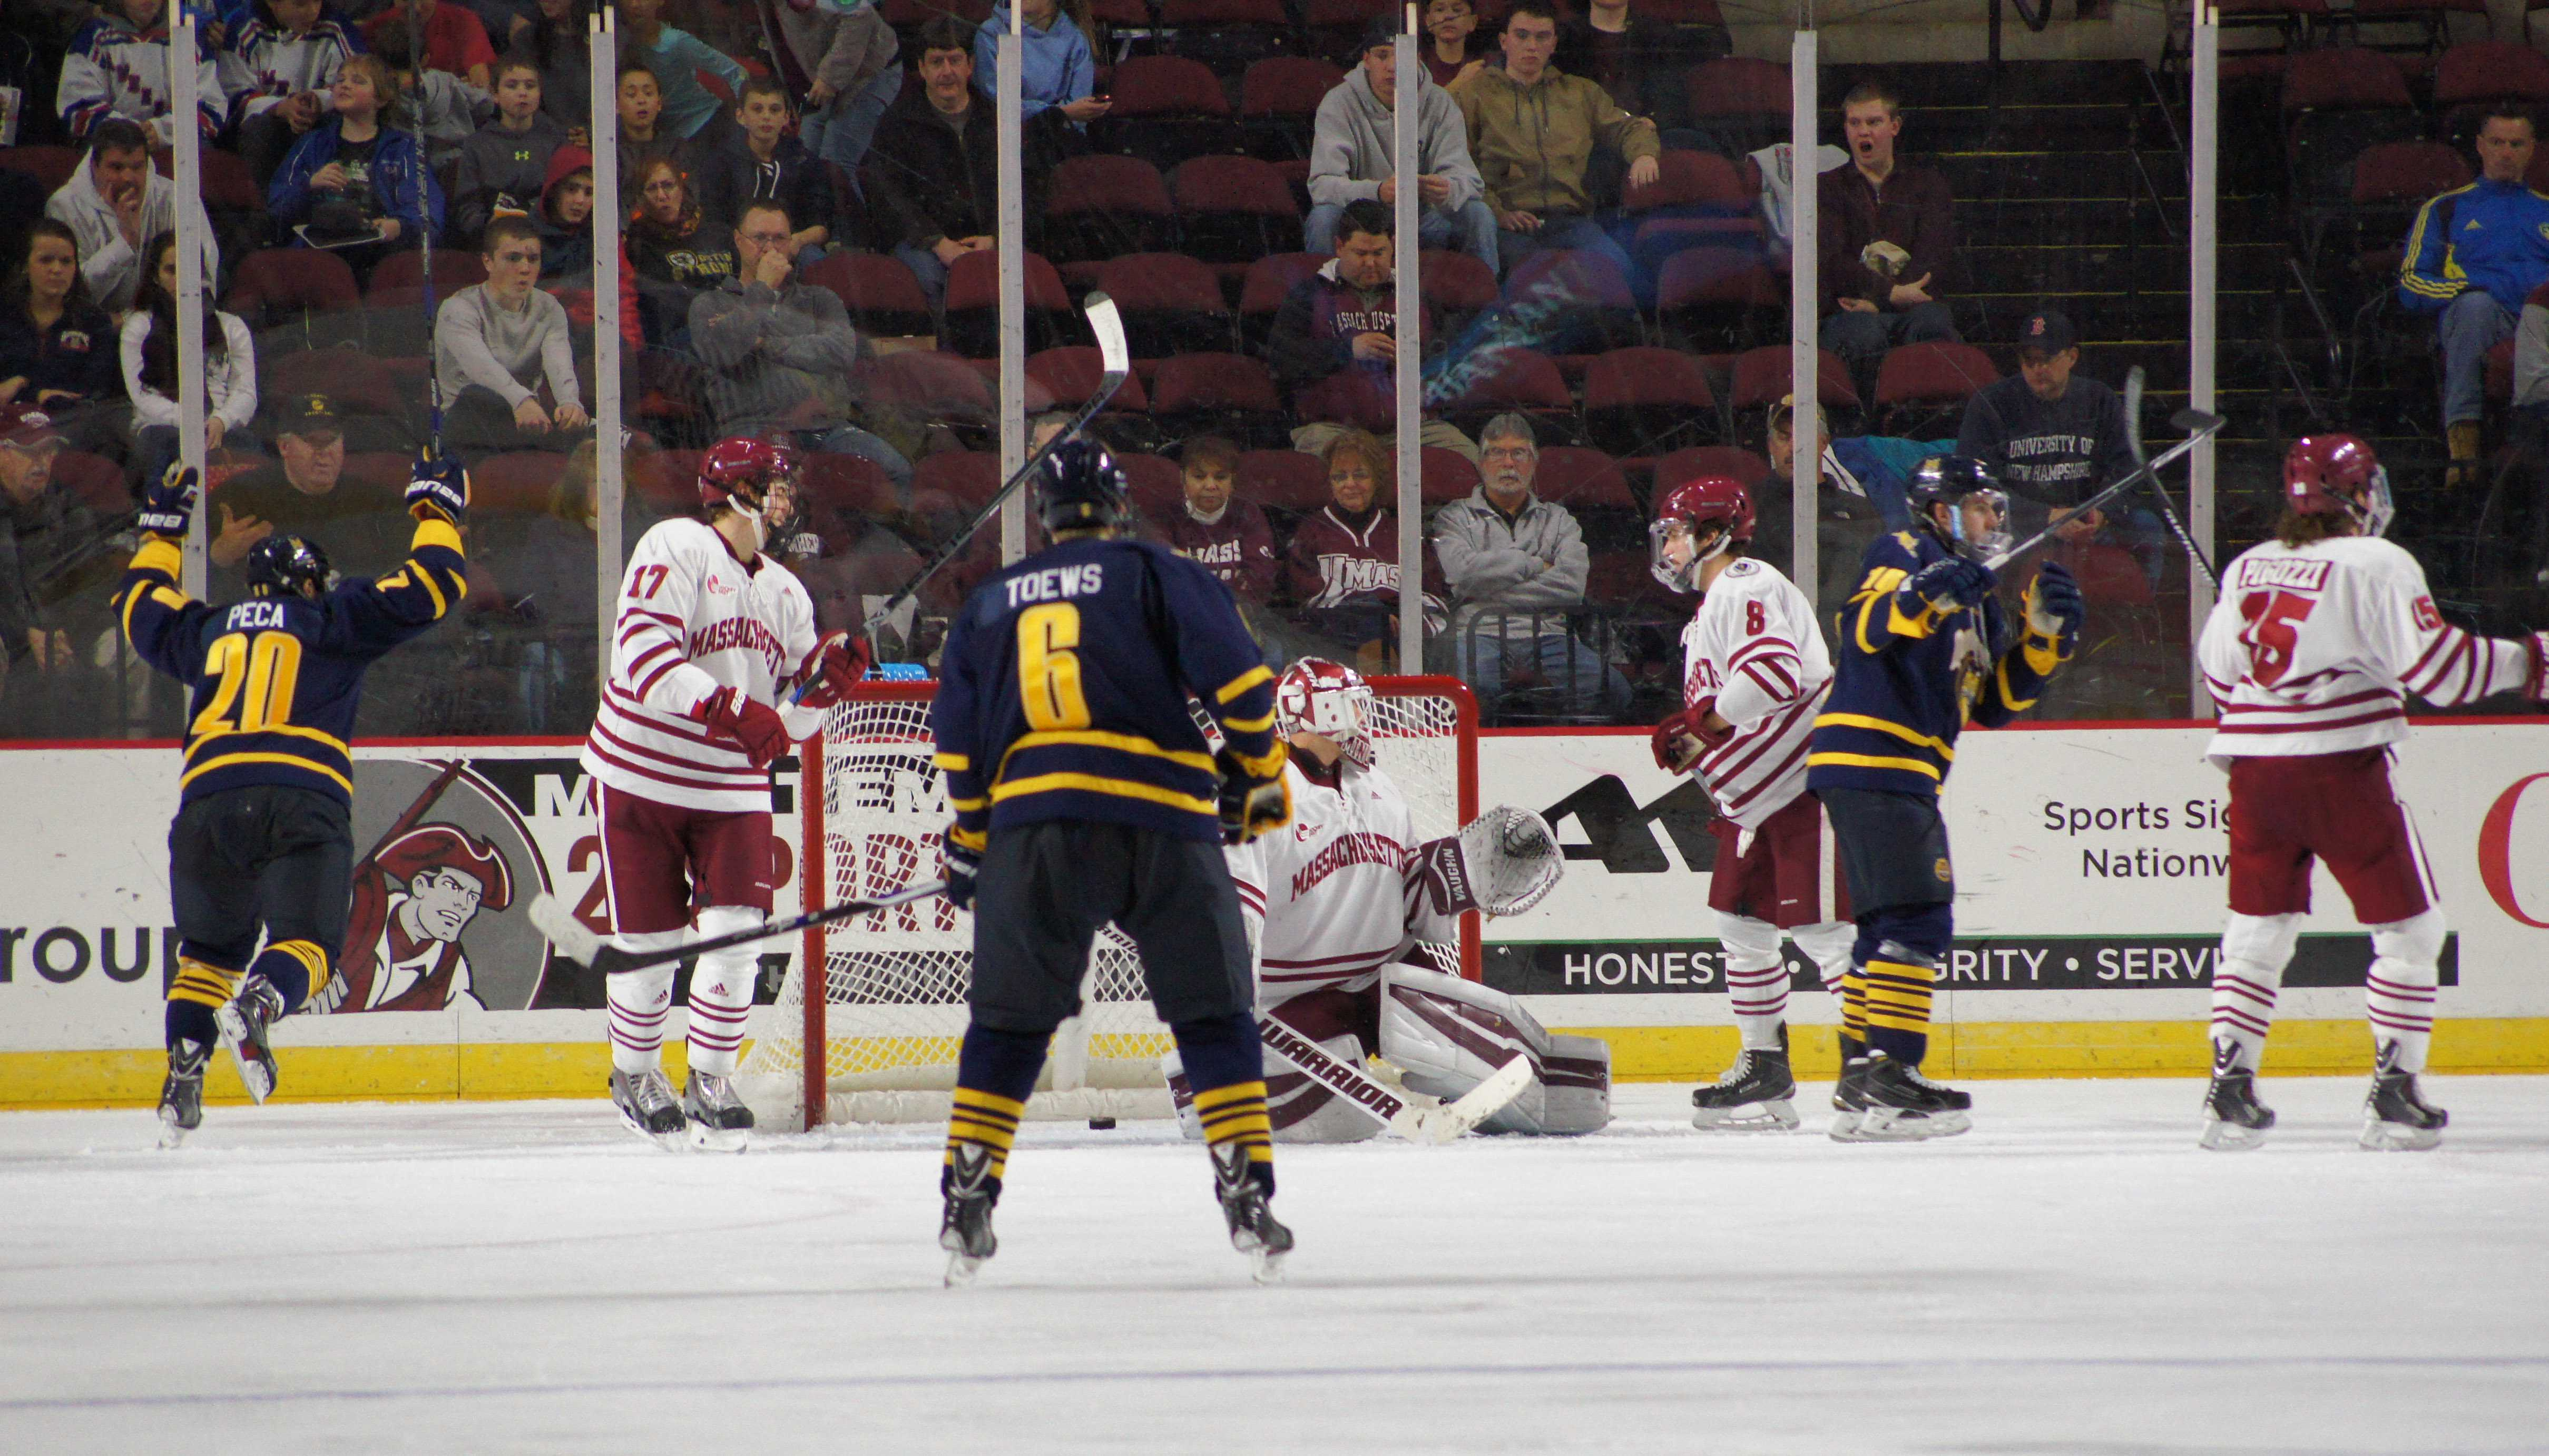 UMass hockey falls to Quinnipiac due to struggling special teams play